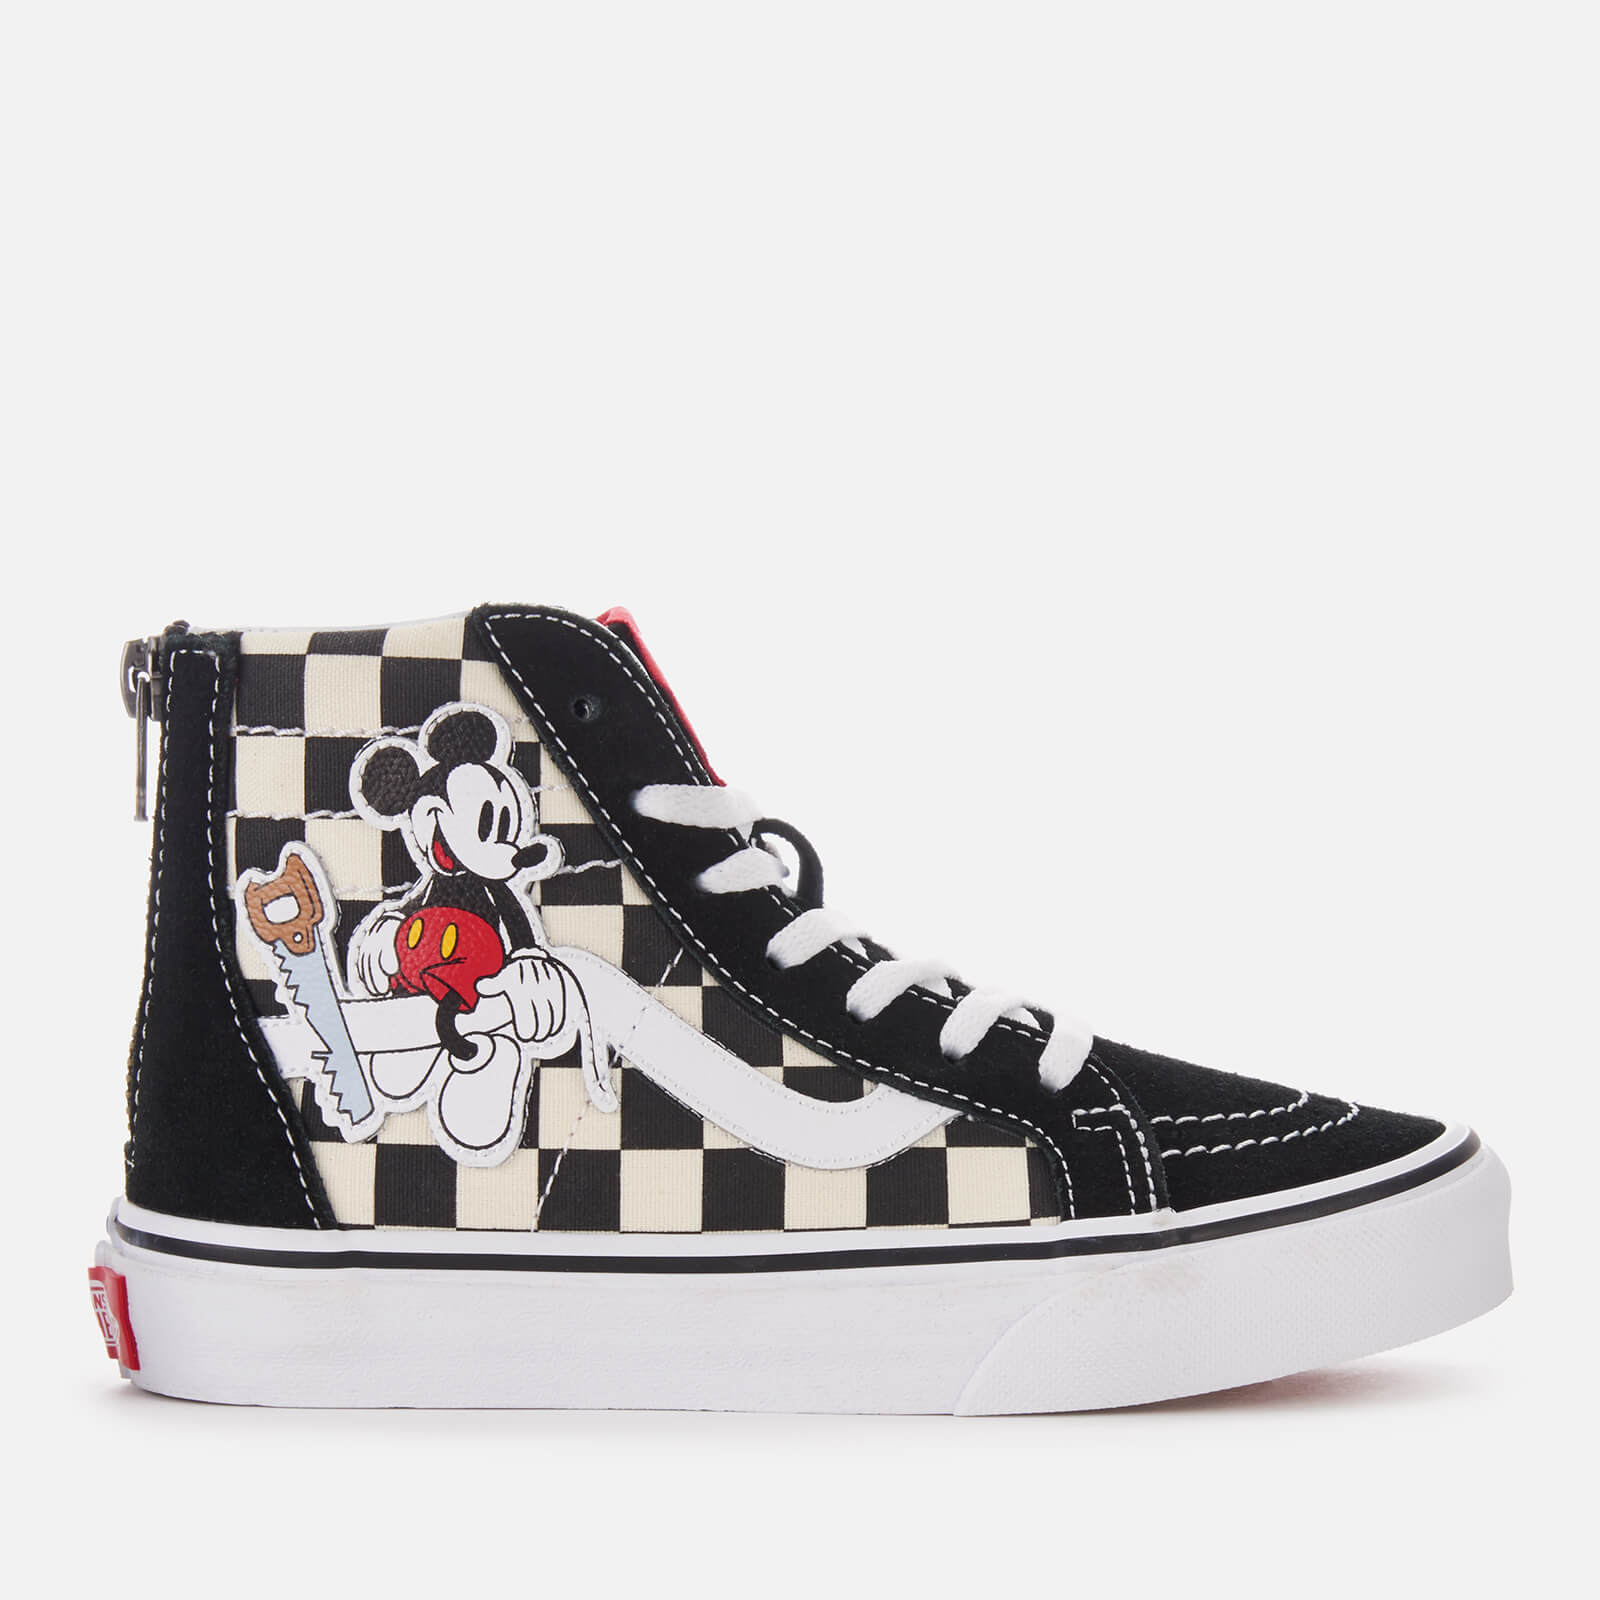 c99ce93924a6 Vans Kid s Disney Mickey Sk8-Hi Zip Trainers - Checkerboard Junior Clothing